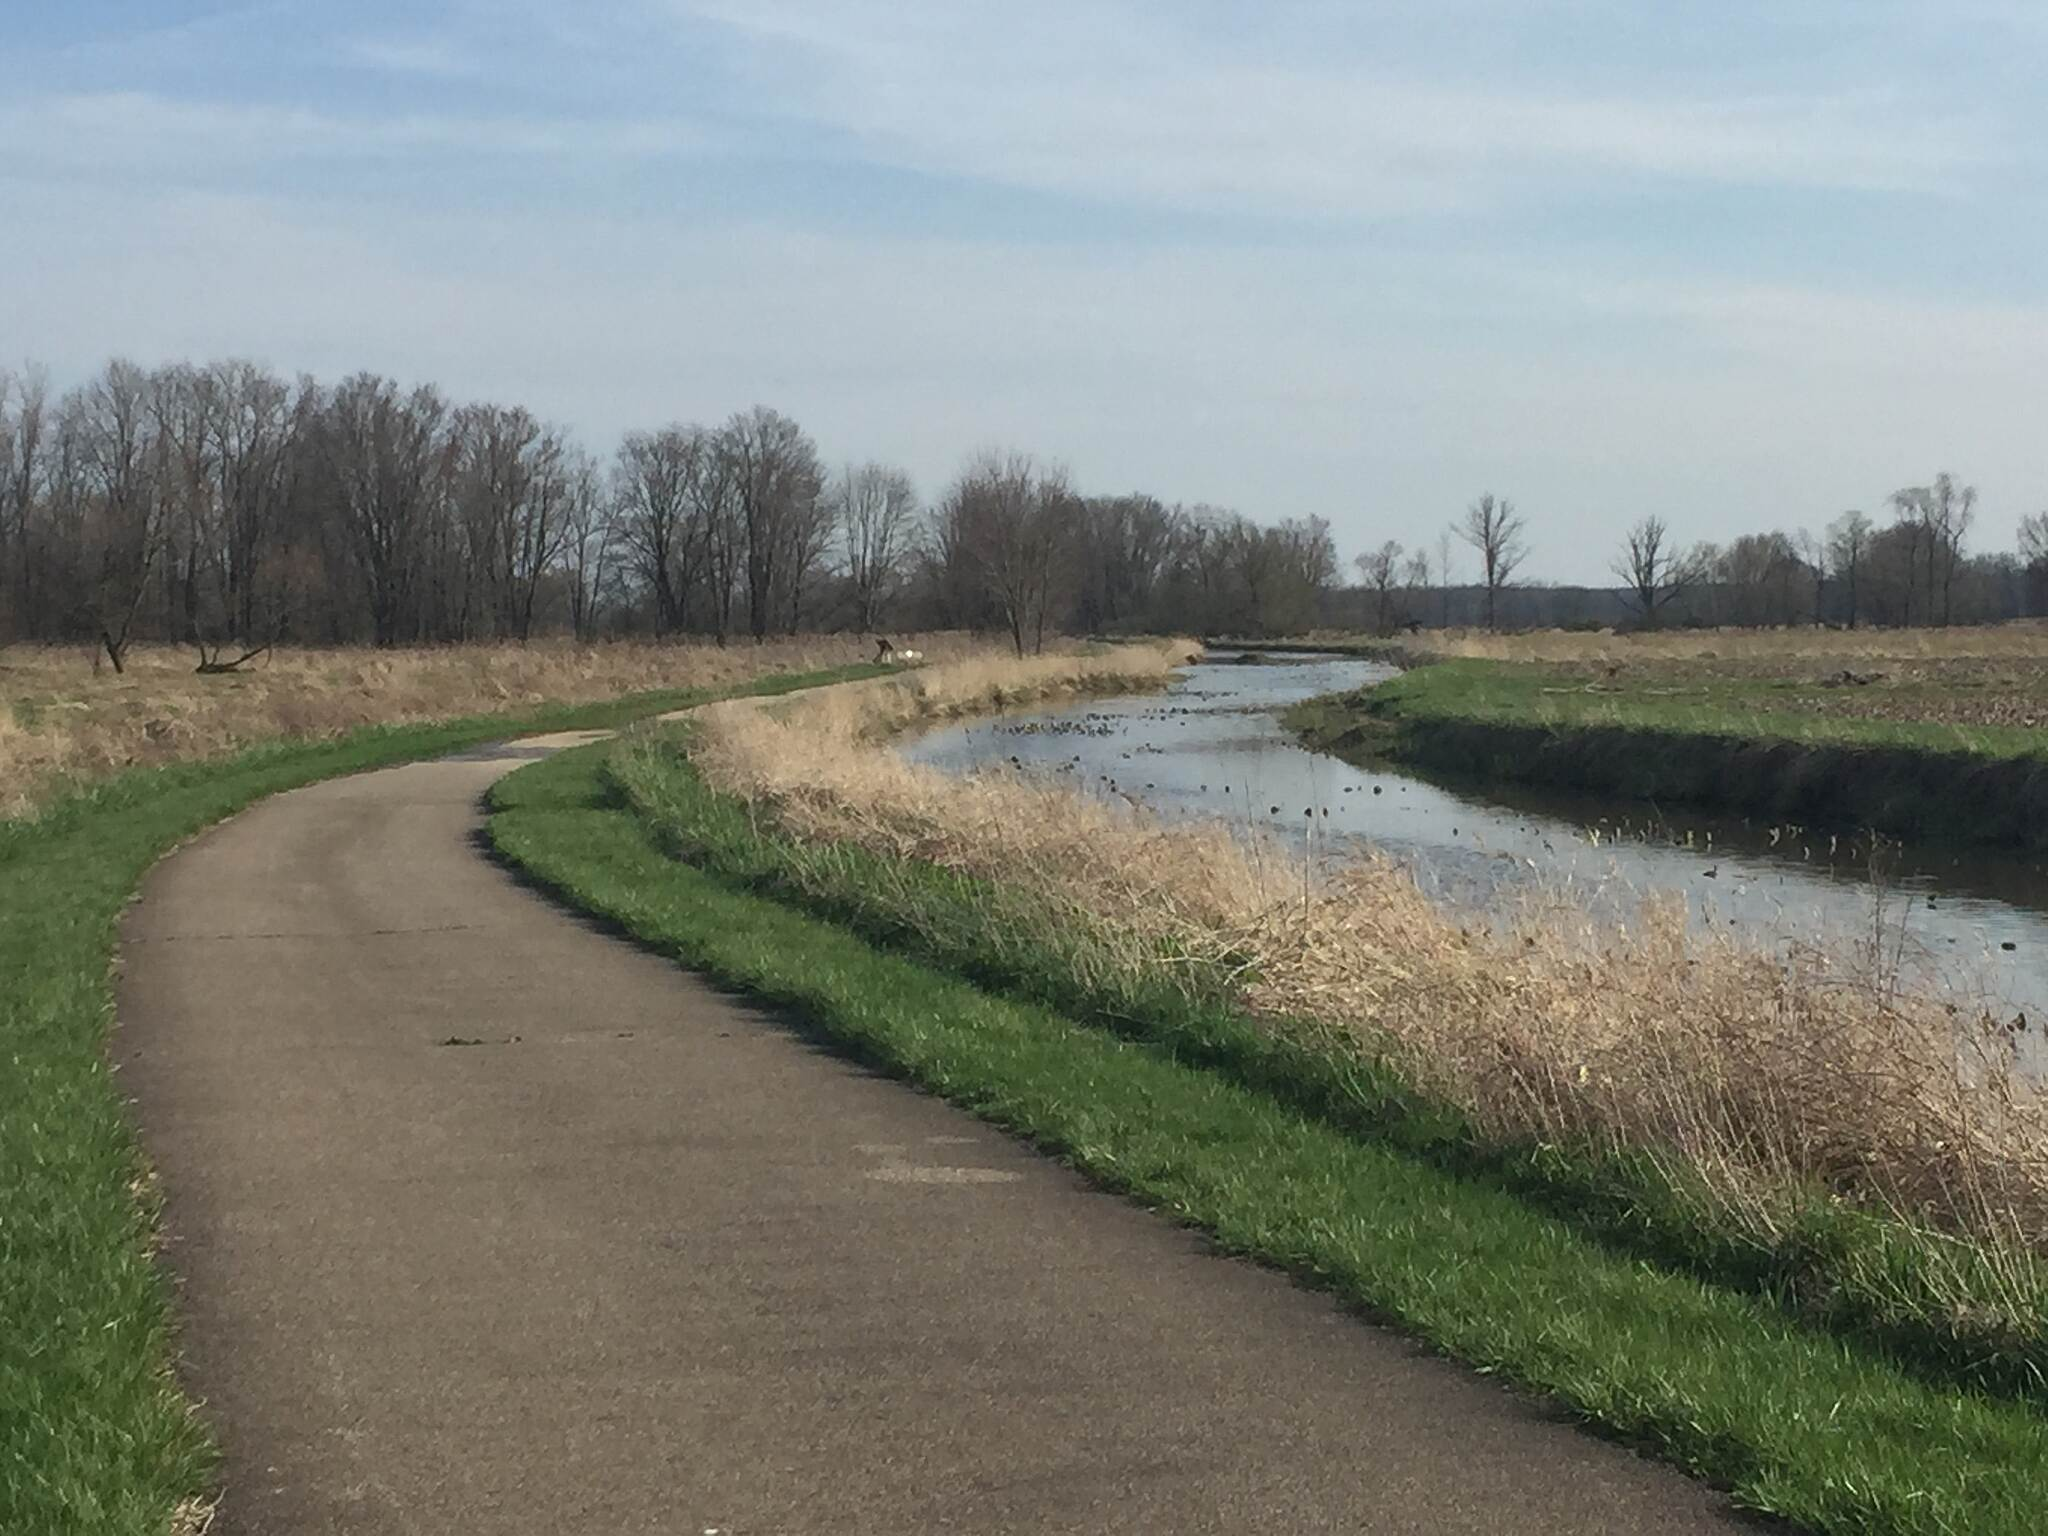 Chippewa Inlet Trail The Meandering Inlet The trail parallels the Inlet Creek that feeds Chippewa Lake in Medina County, Ohio.  This wetlands area supports numerous forms of wildlife.  April 12, 2017.